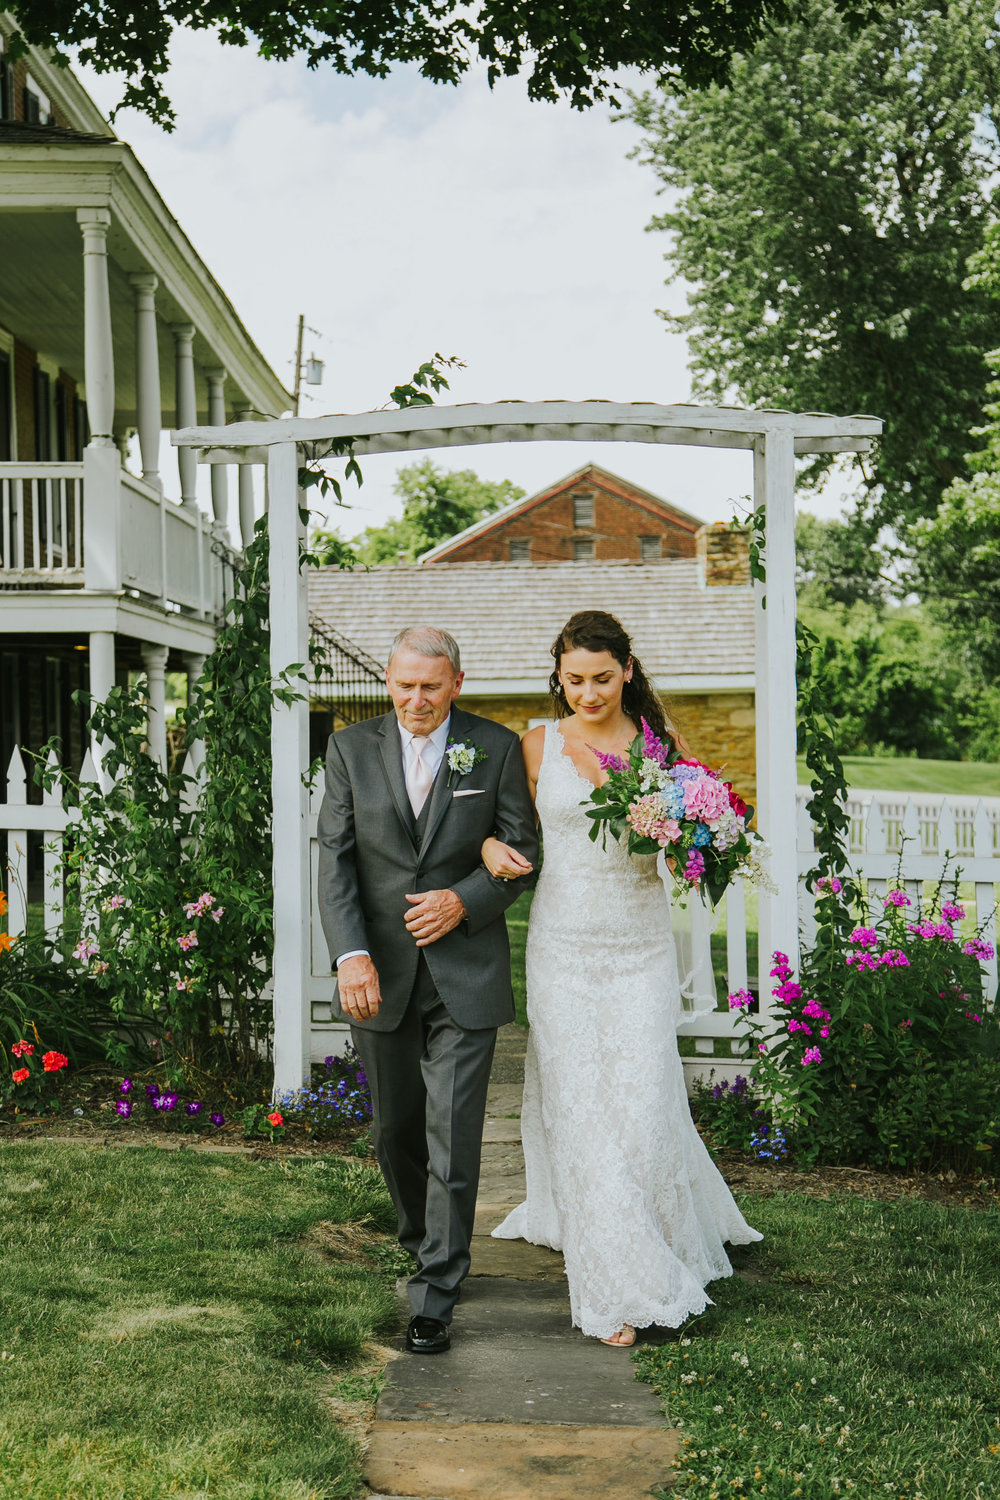 West Overton Wedding39.jpg